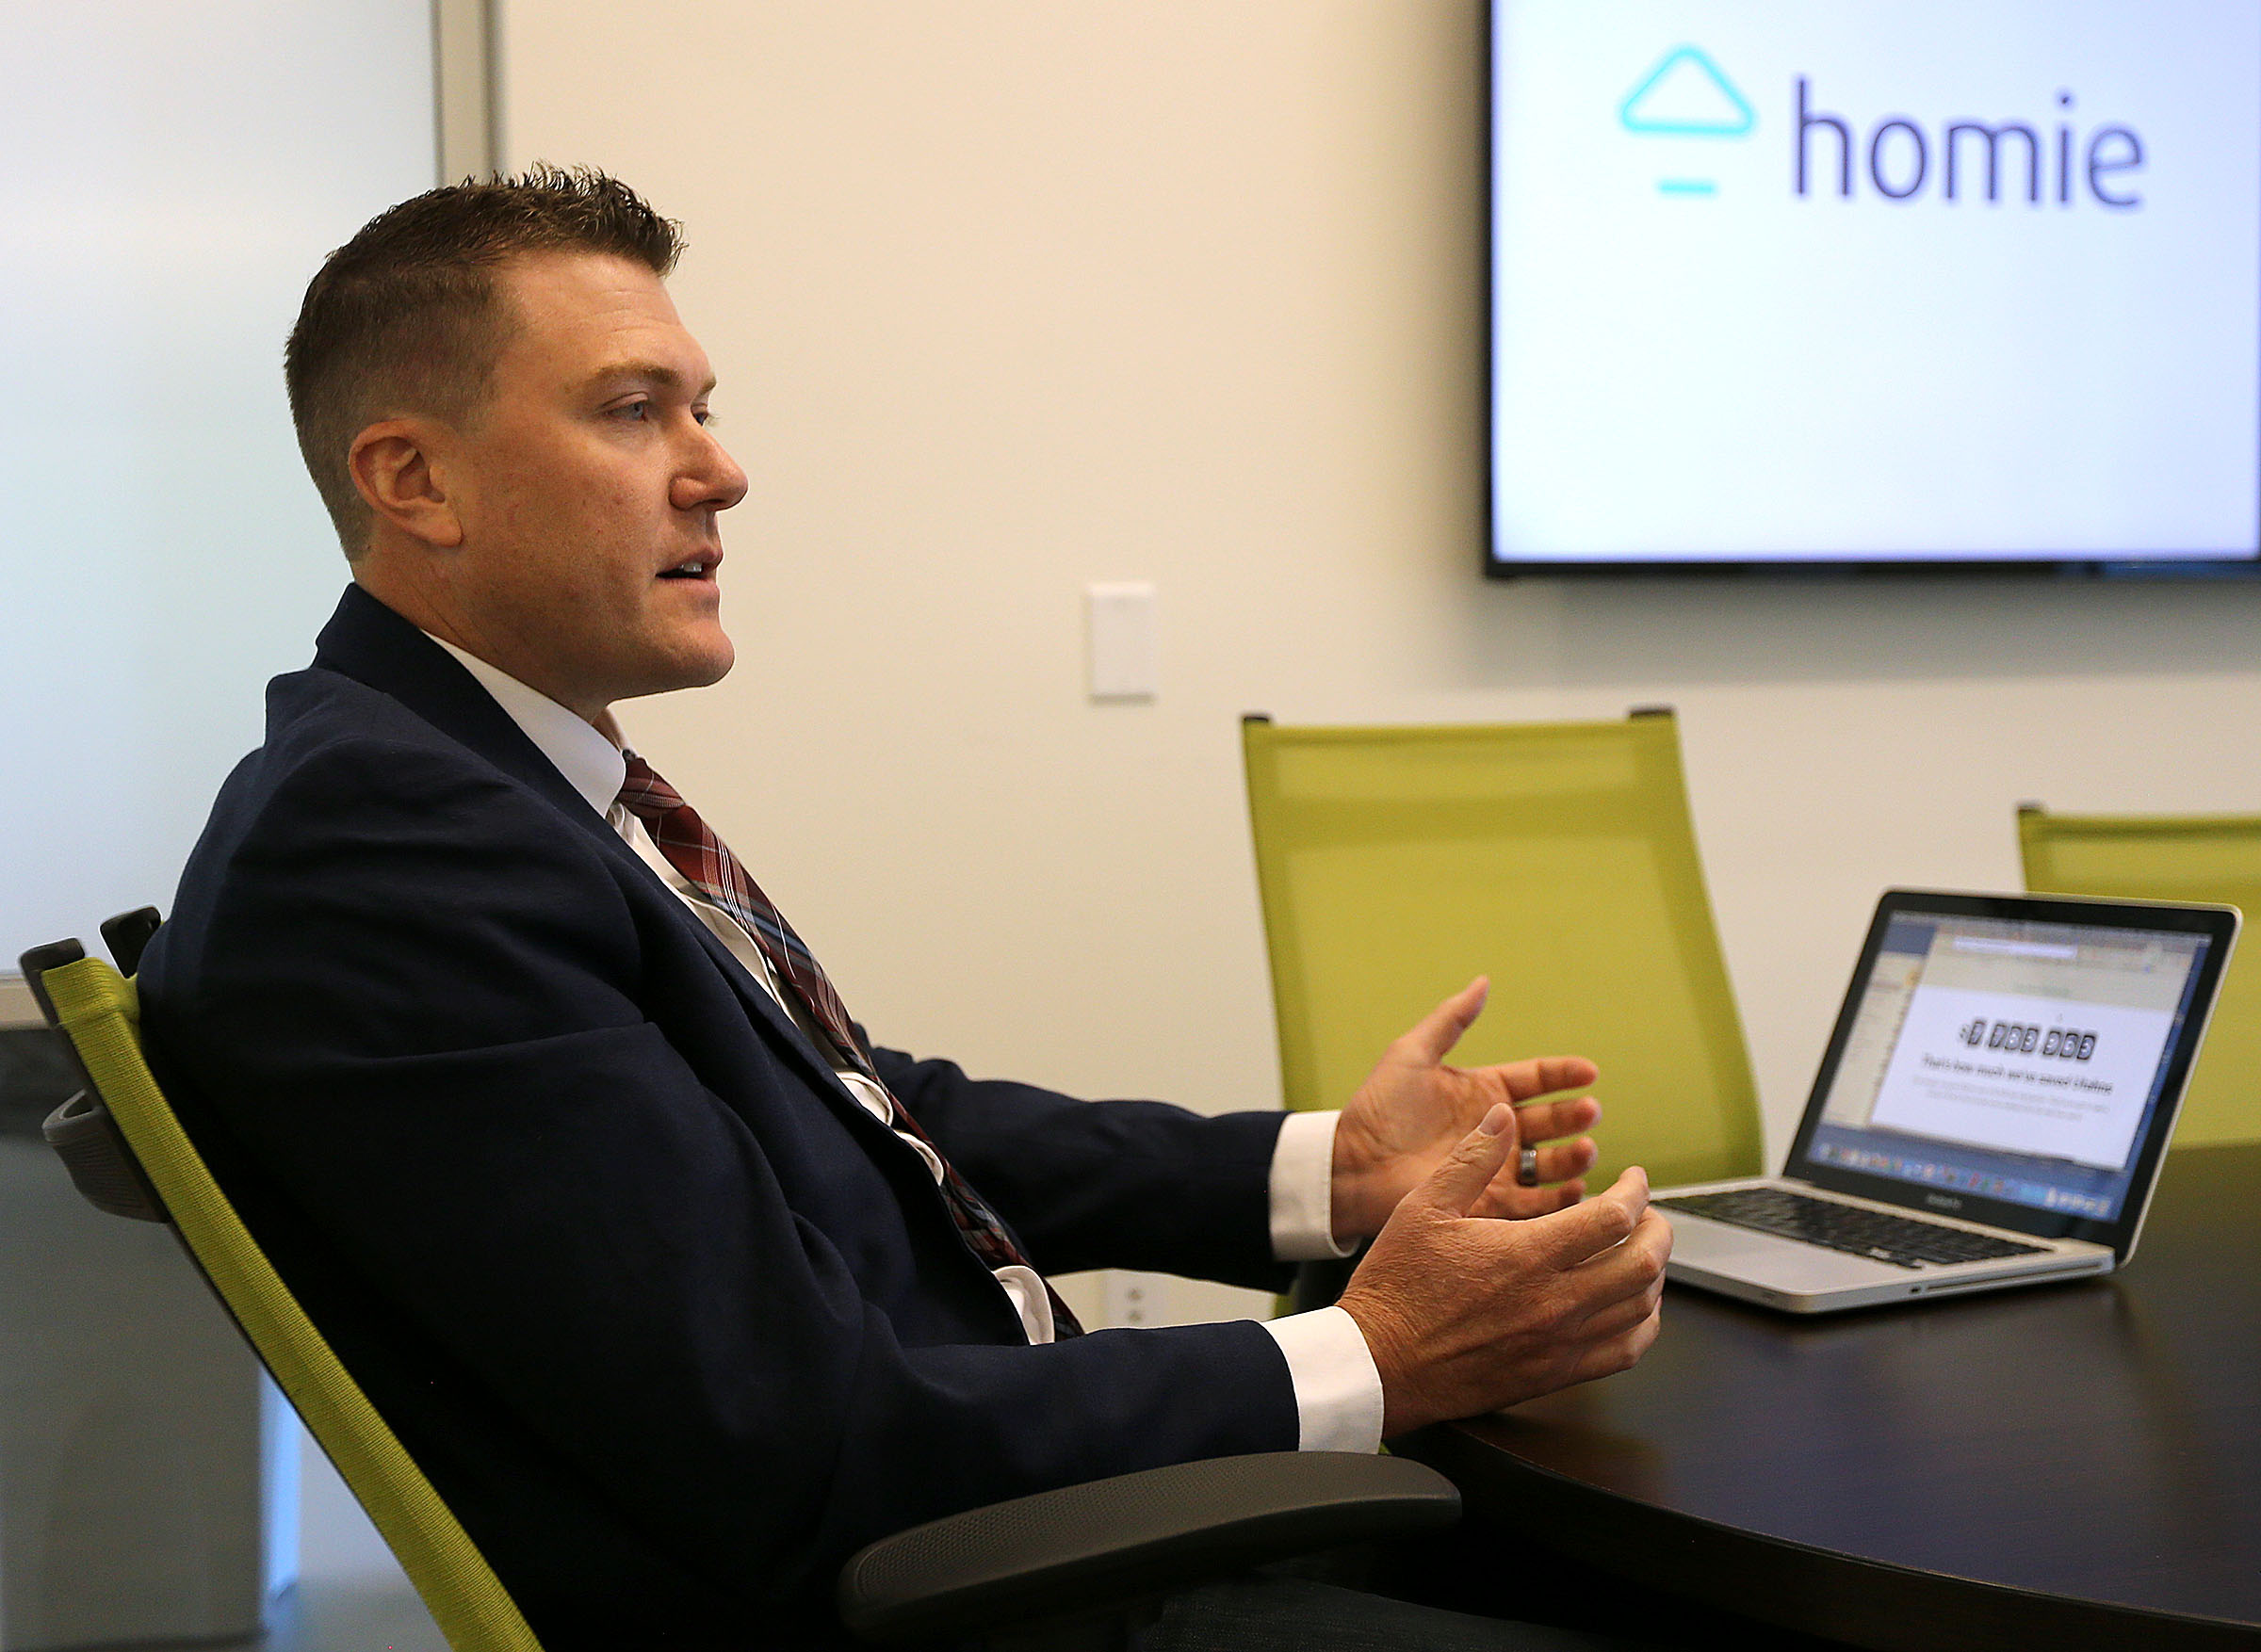 Johnny Hanna, CEO and co-founder of Homie, talks about his startup at the the company's headquarters in Draper on Wednesday, June 7, 2017.